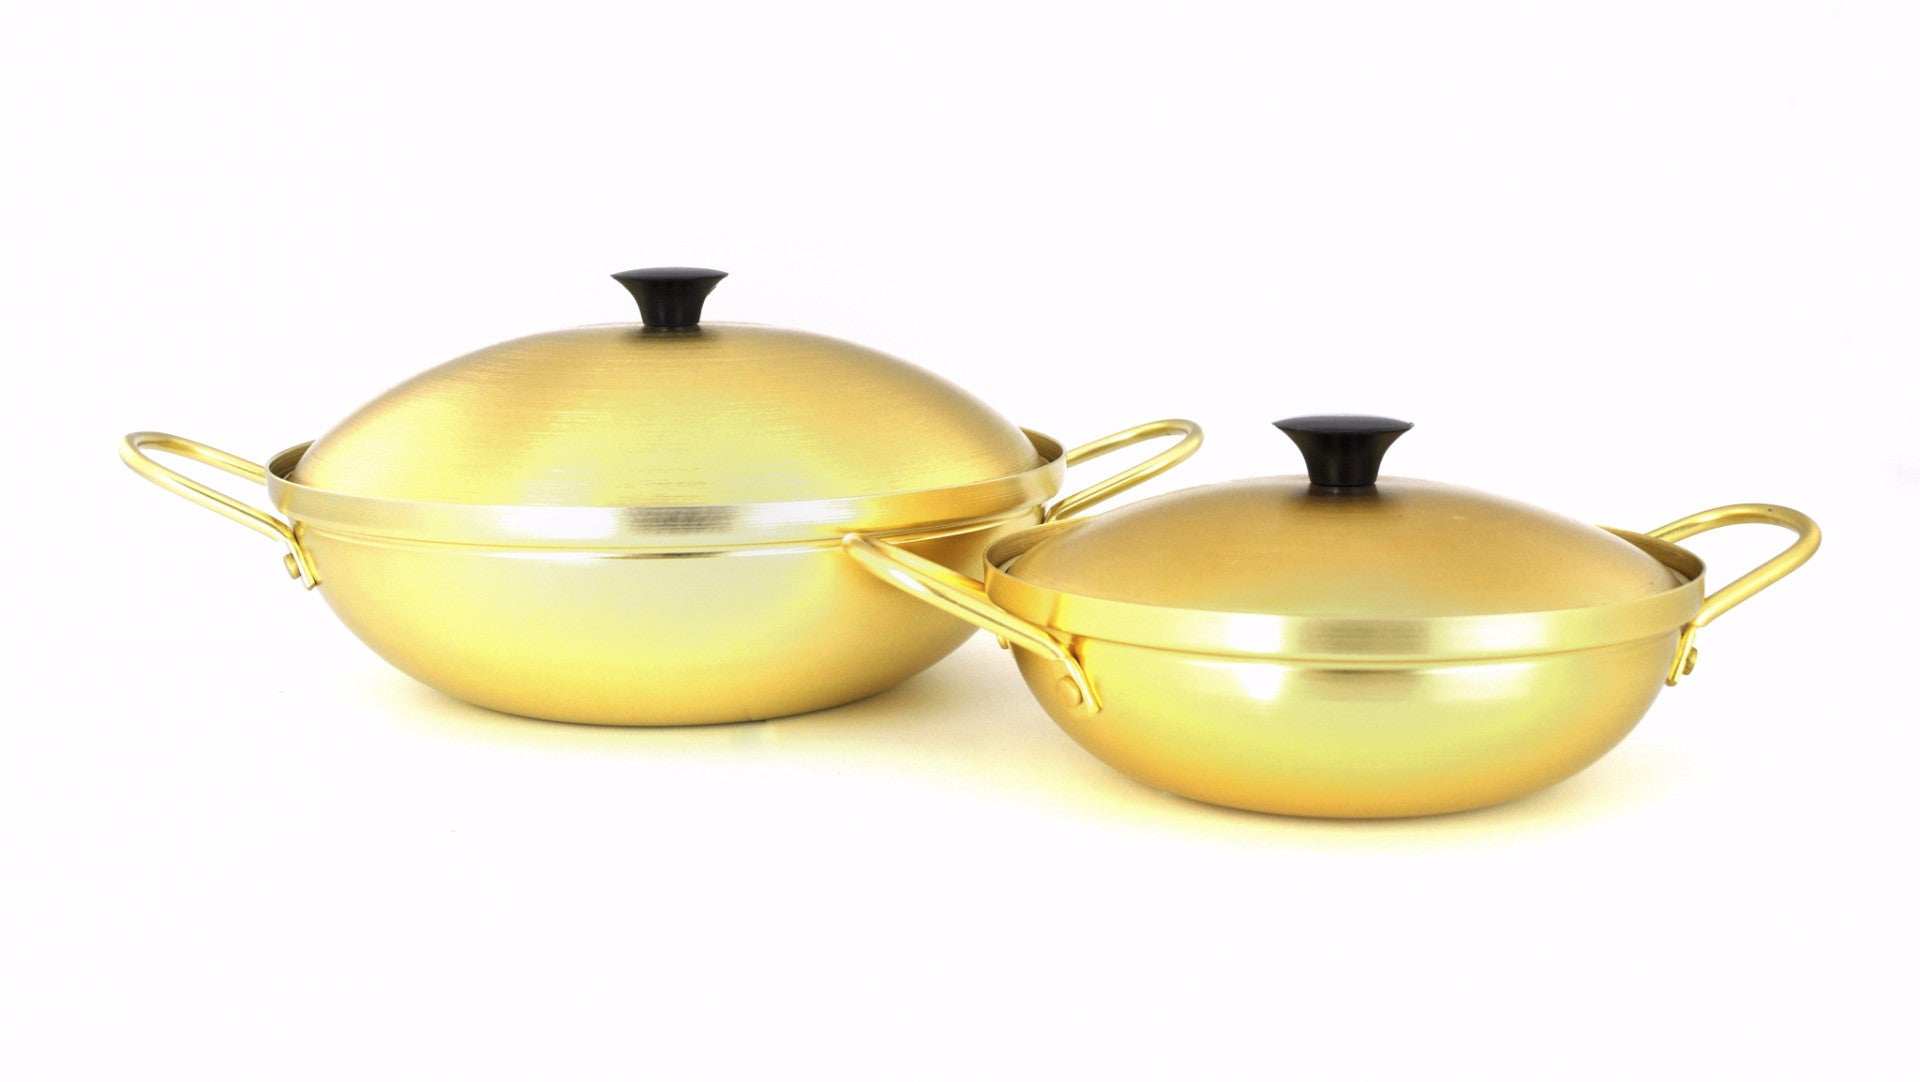 Nickel Plated Yellow Aluminum Korean Pot with Lid 양은 냄비 (Case-10pcs), Aluminum - eKitchenary